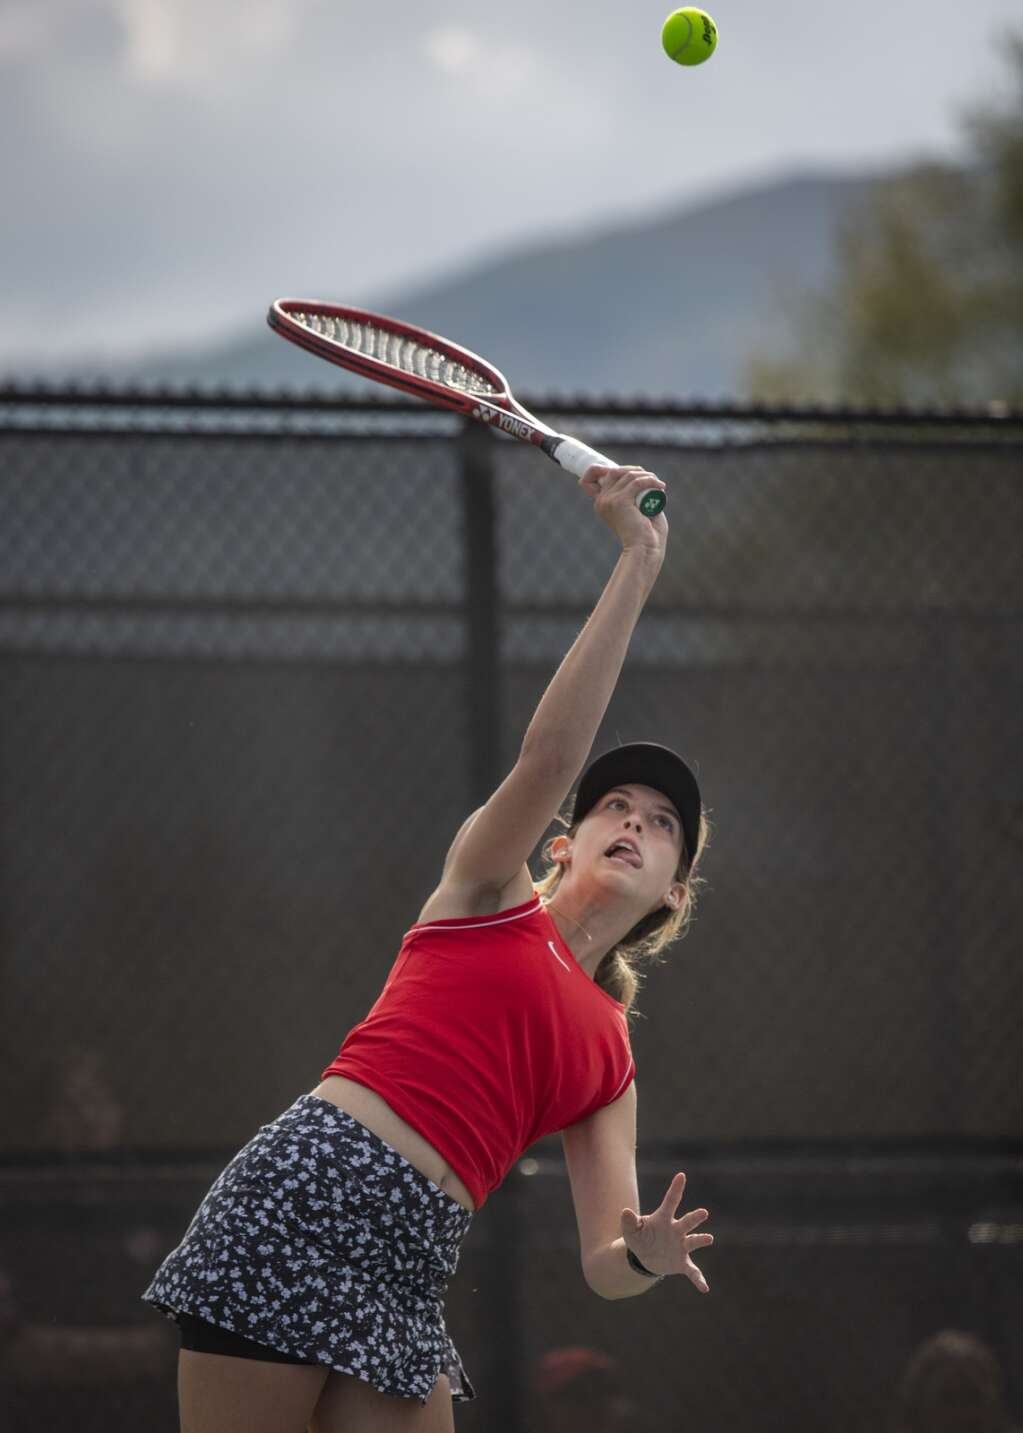 Park City High School junior Aly Inglish serves the ball during her second doubles matchup against Murray High School at the PC MARC Thursday afternoon, Sept. 23, 2021. (Tanzi Propst/Park Record)